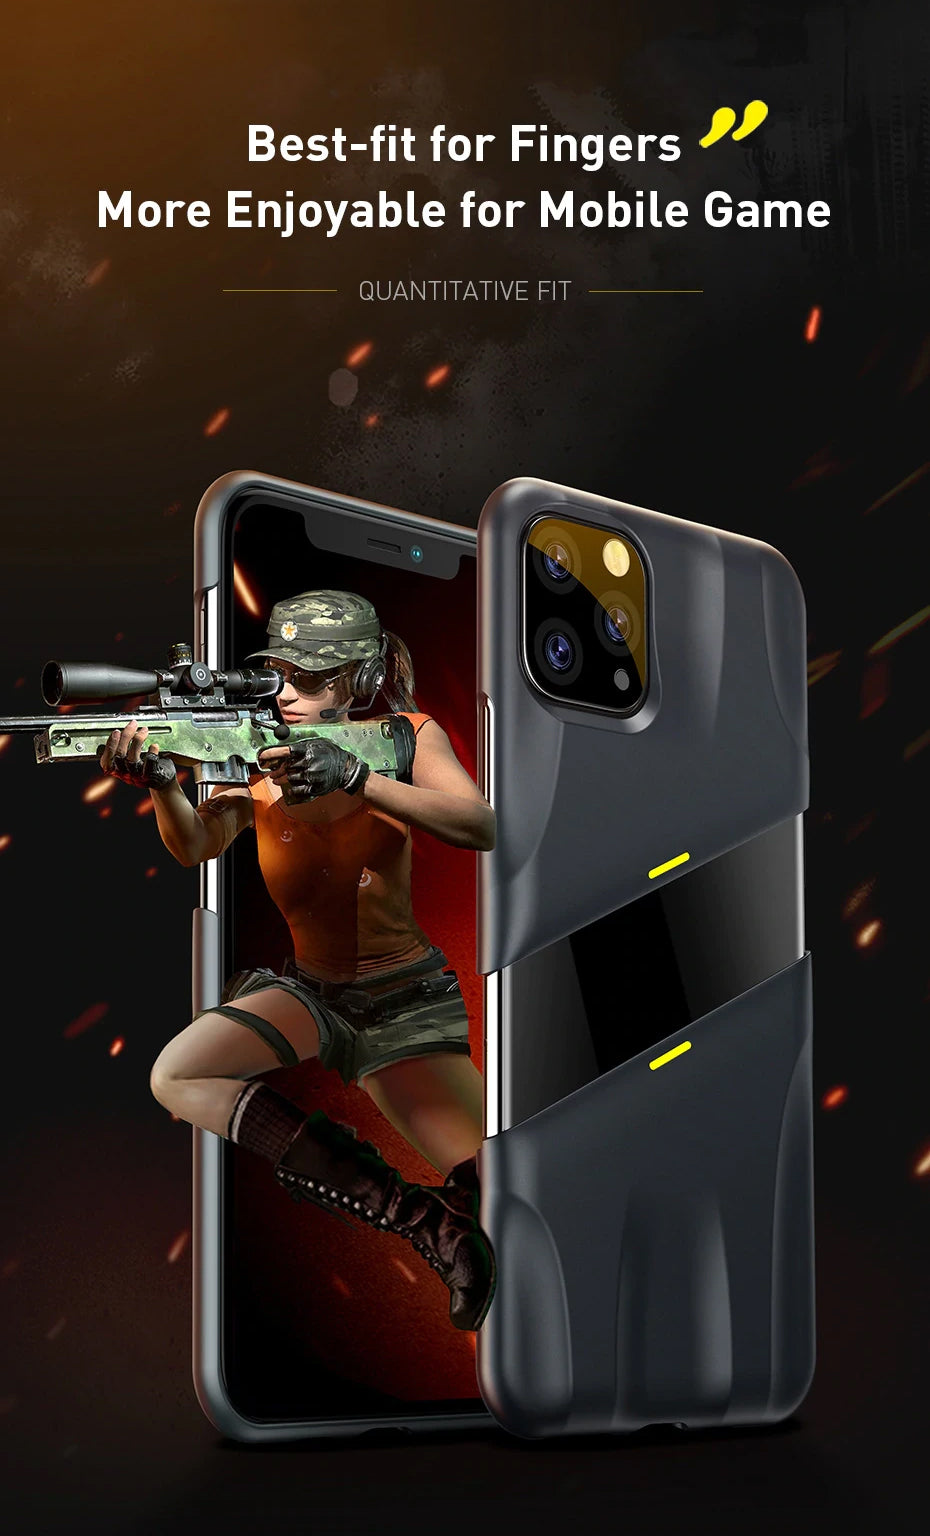 Shockproof Ergonomic Half Wrapped Gaming Case Supports Wireless Charging for iPhone 11 Pro Max 5.8inch 6.1inch 6.8inch